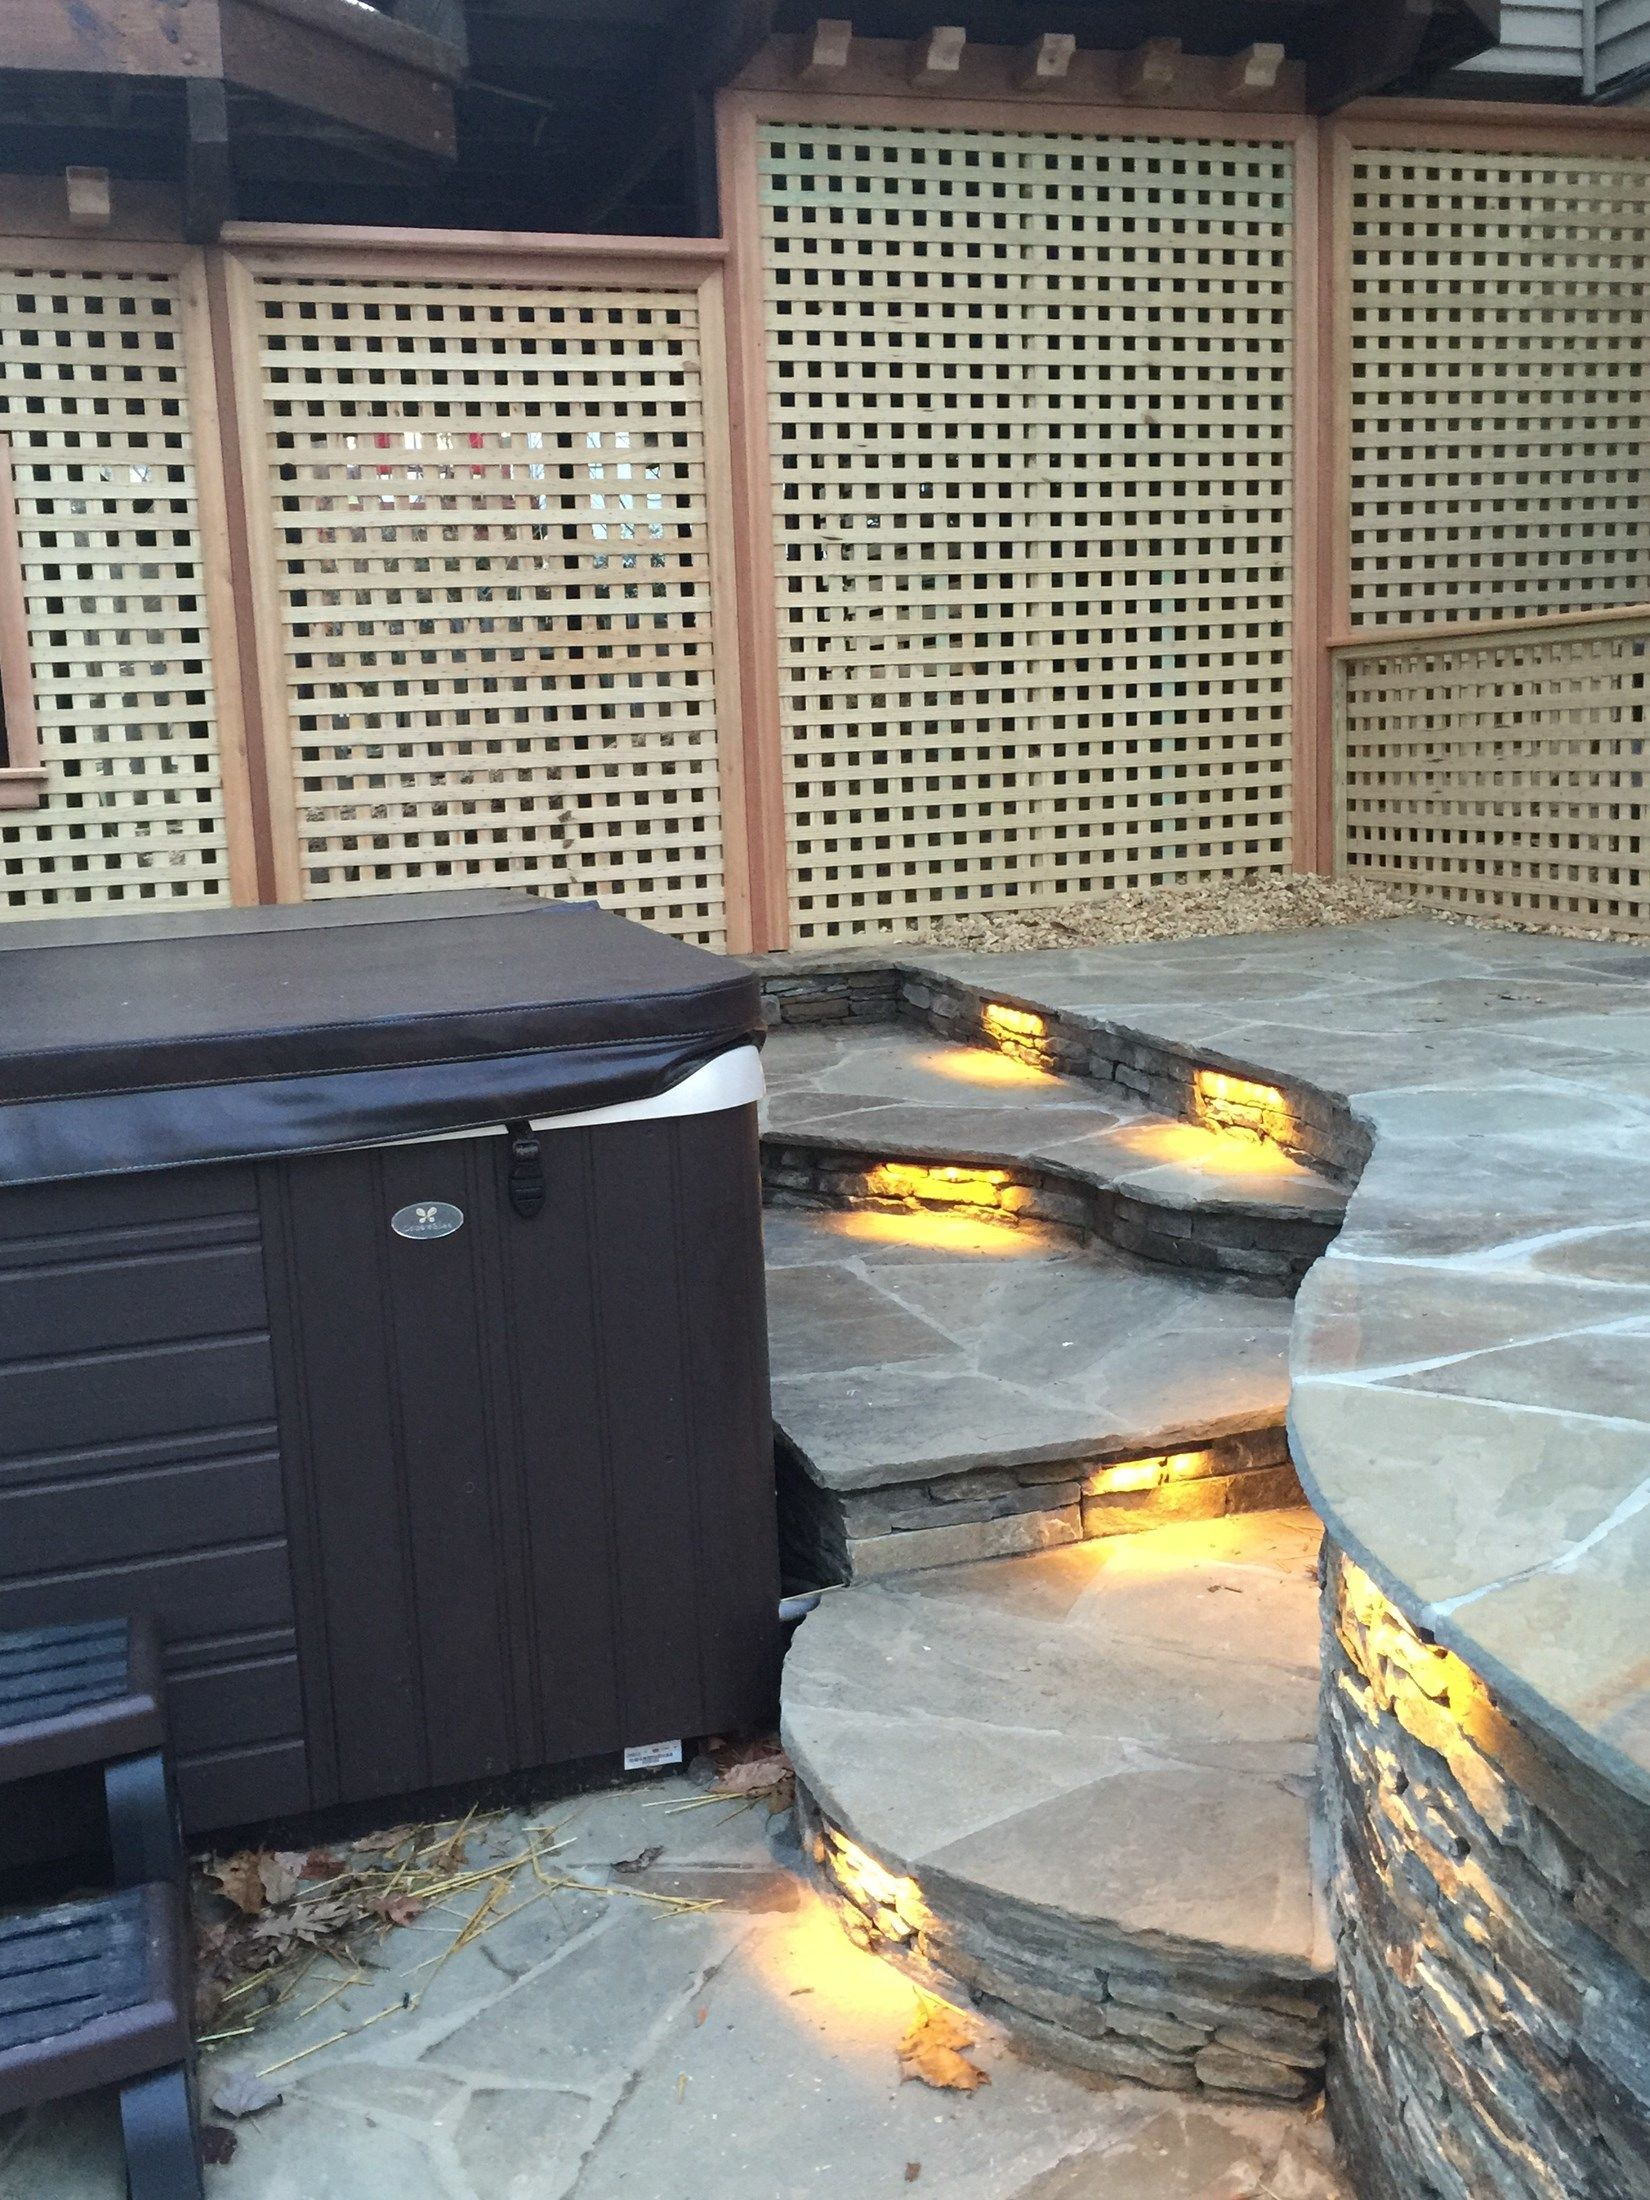 Flagstone patio with Hot tub. - Picture 2022